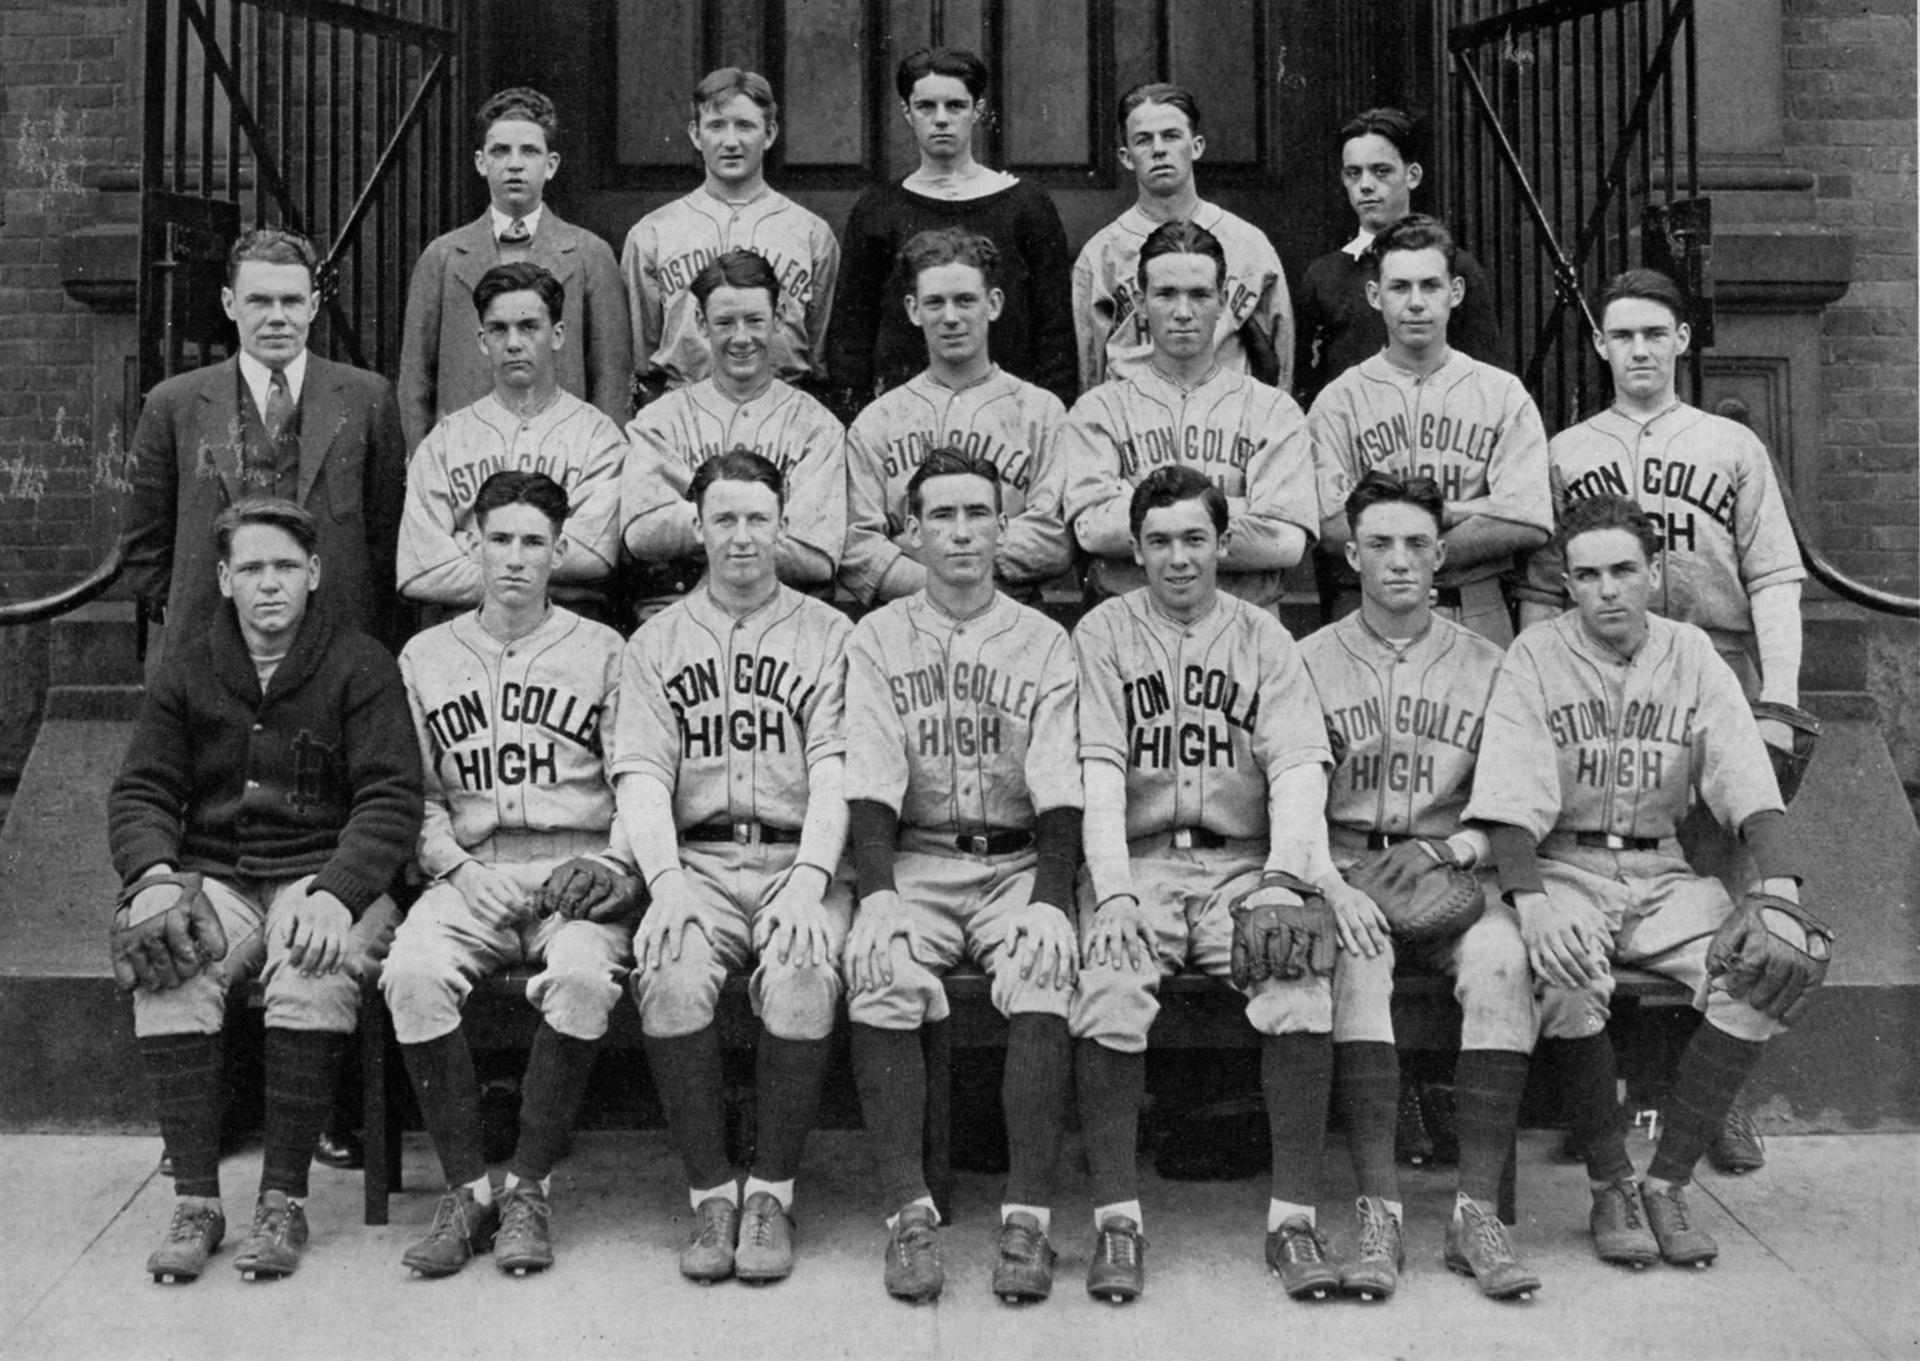 Boston College High School baseball team, 1931. Bill Shaughnessy is in the second row, far right.